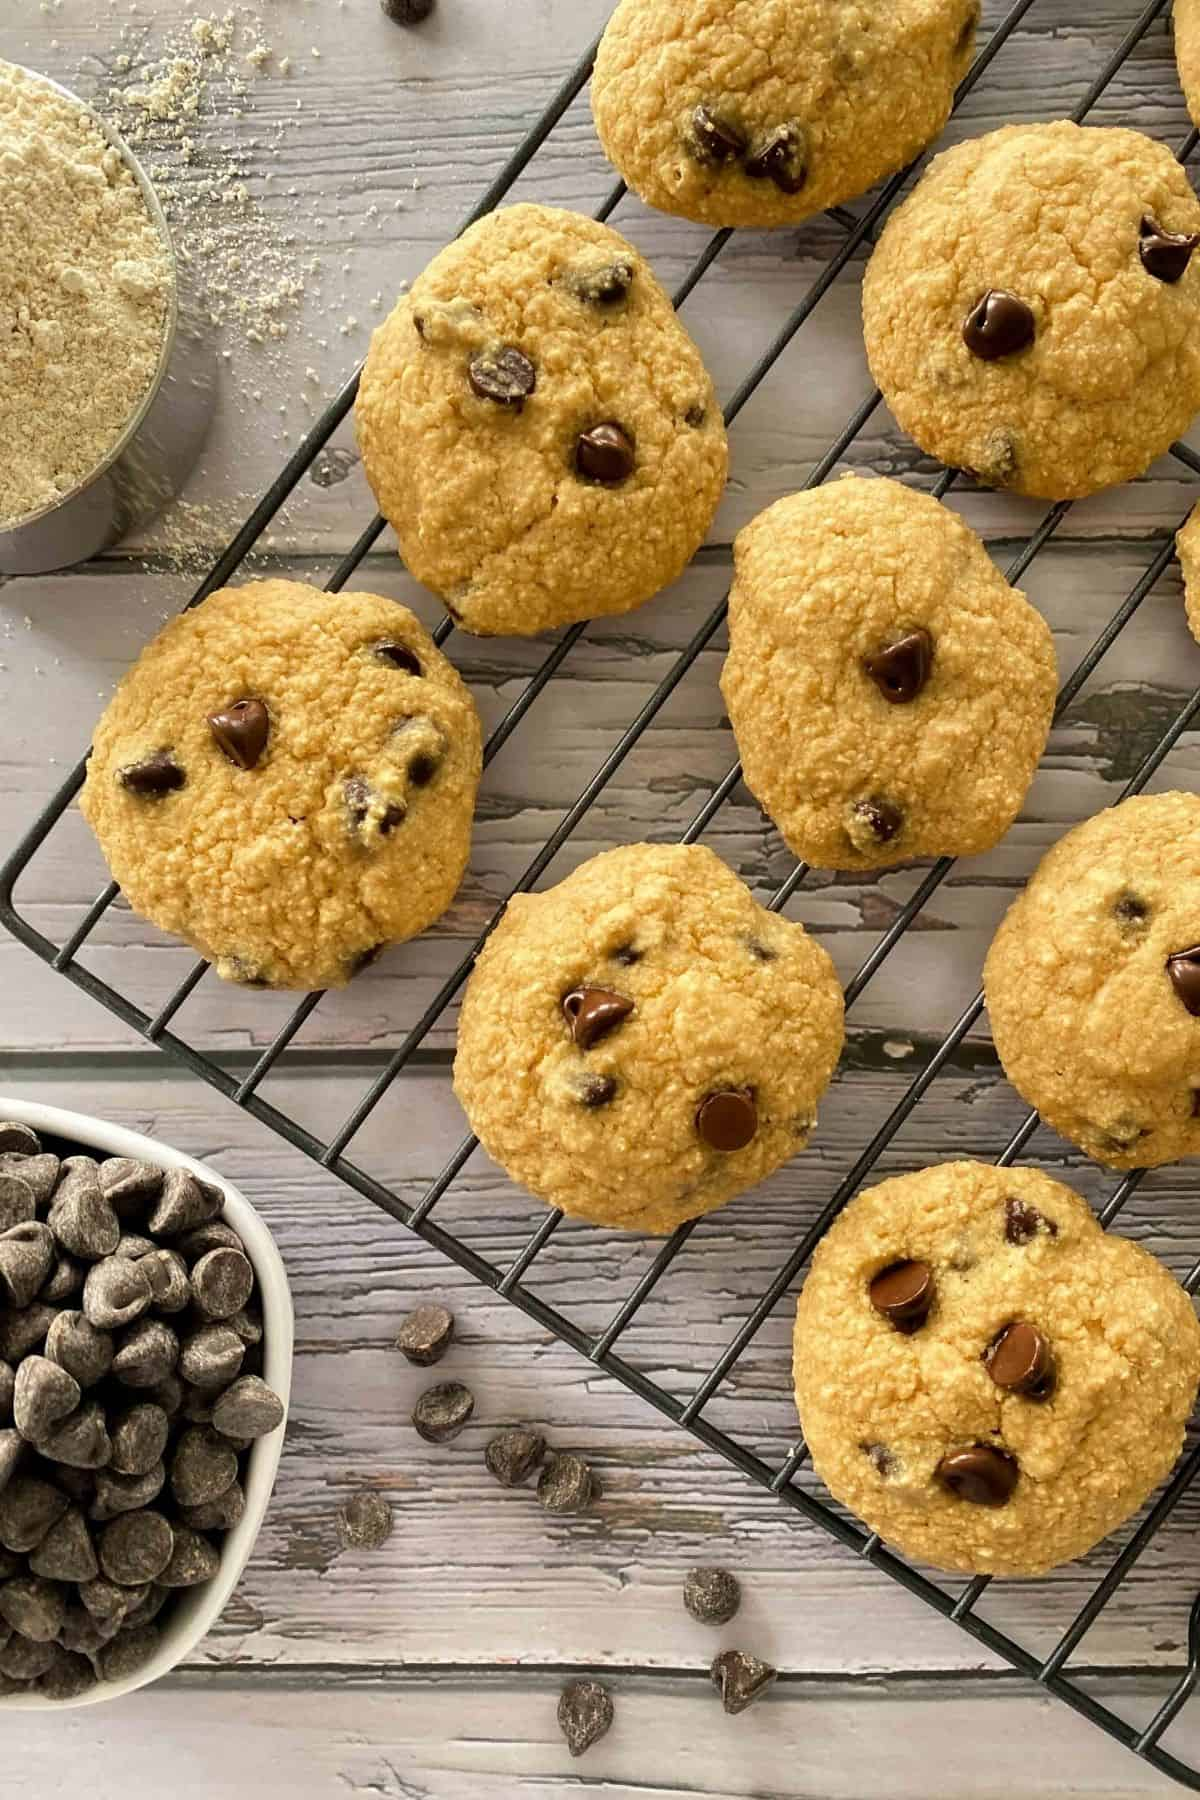 Cookies on cooling rack with cup of flour and chocolate chips on the side.